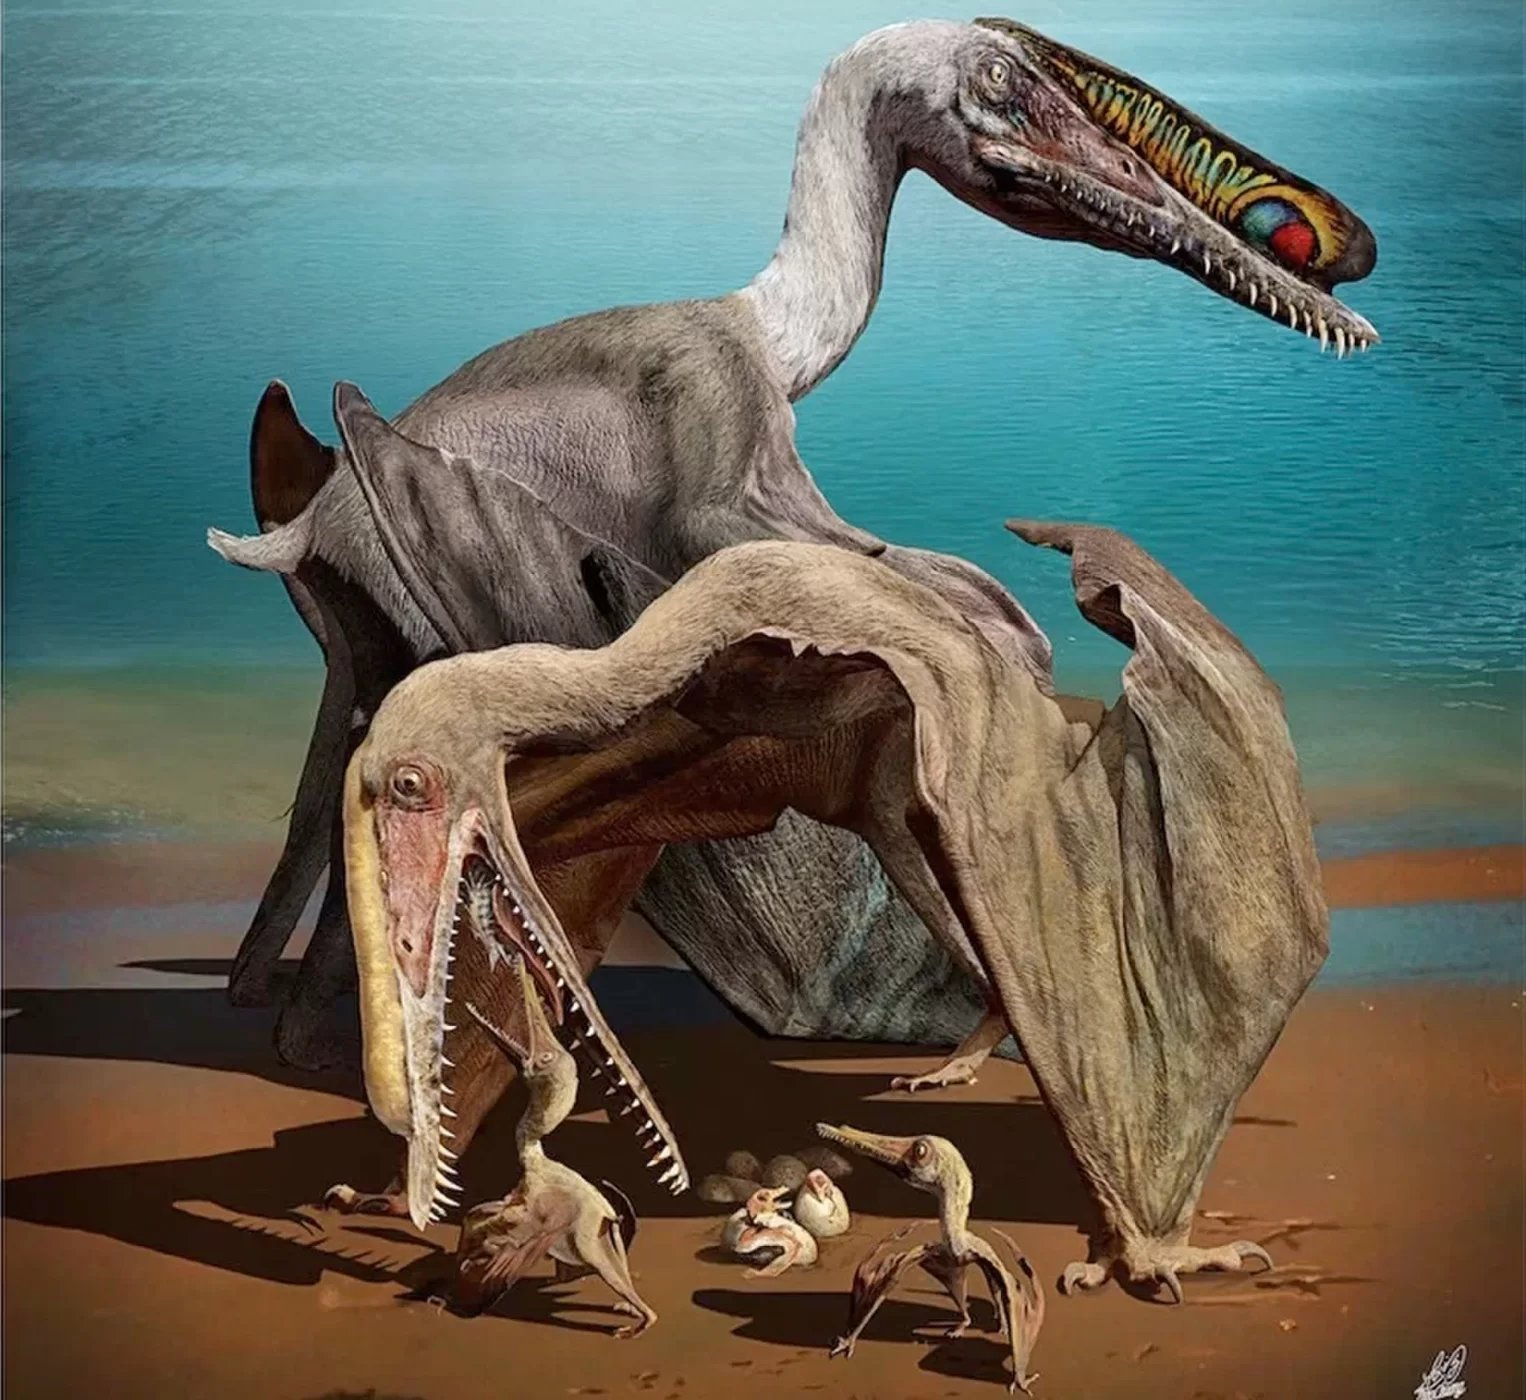 The young of the pterosaur Hamipterus tianshanensis likely couldn't fly at birth. Credit: Zhao Chuang